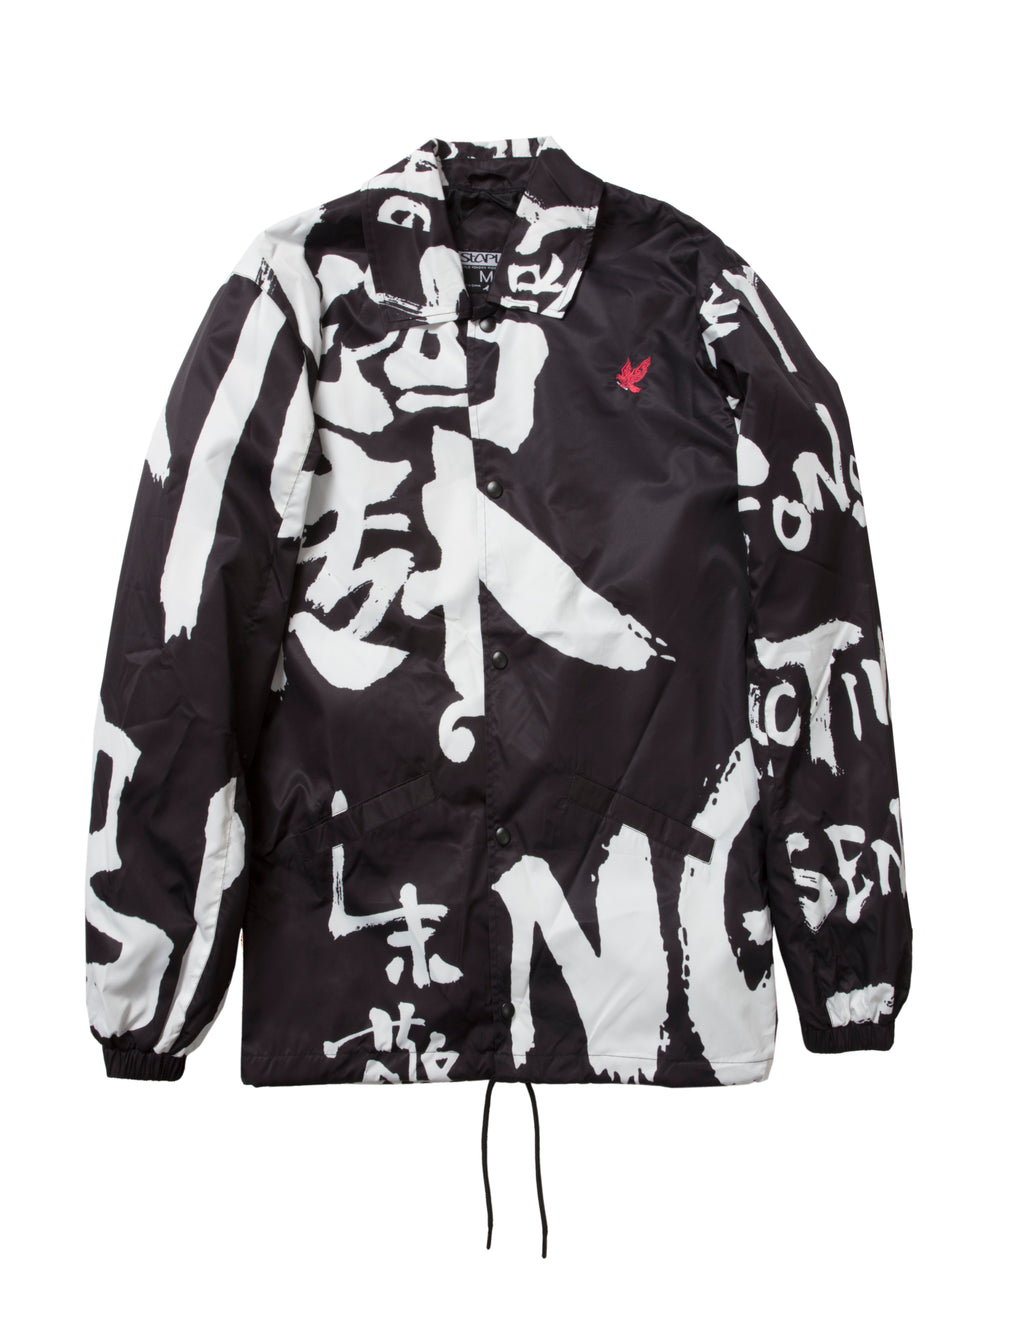 Staple x Zhu Jingyi Coach Jacket - Jacket | Staple Pigeon